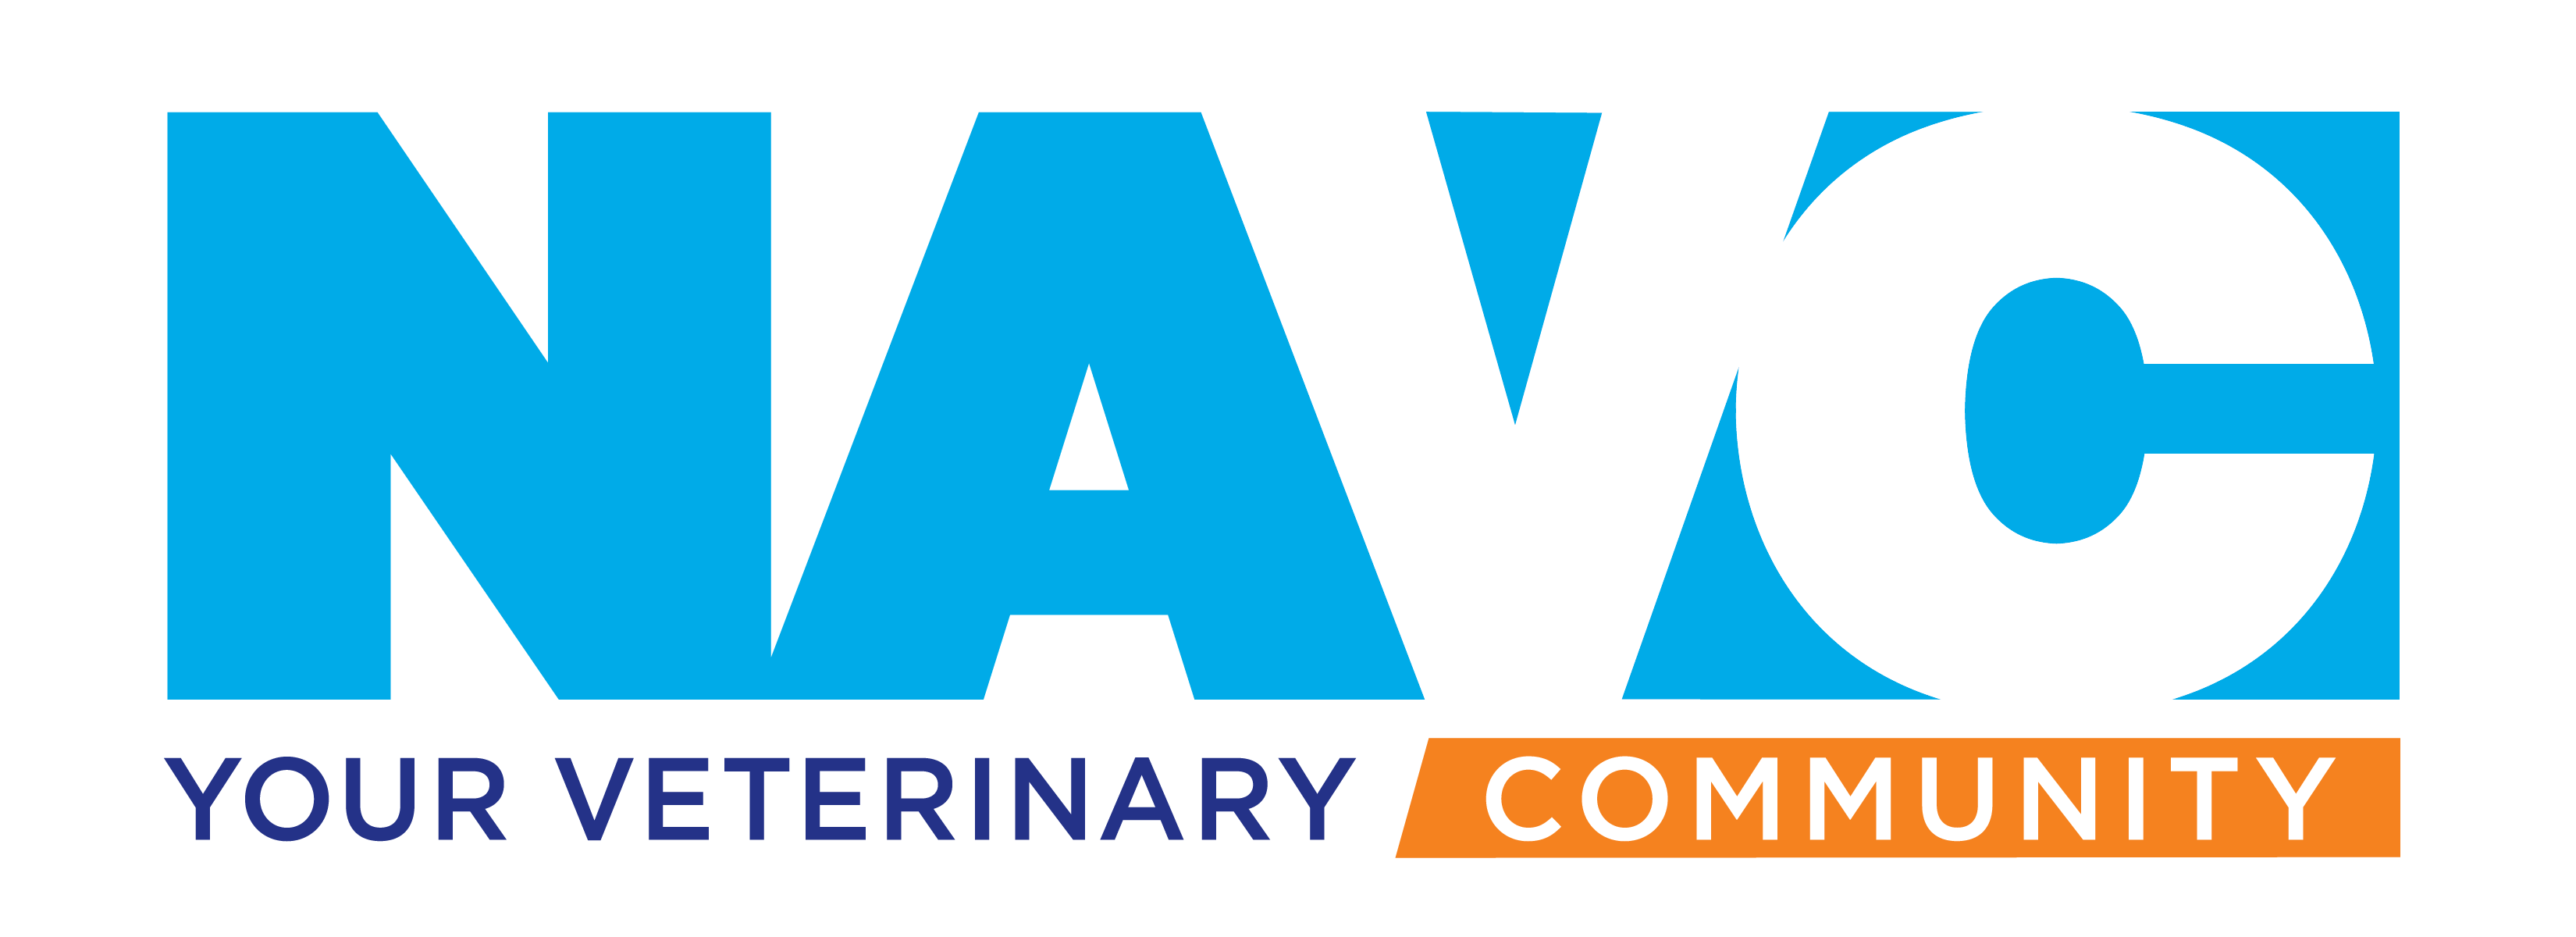 Related Congresses & Societies - WSAVA 2019